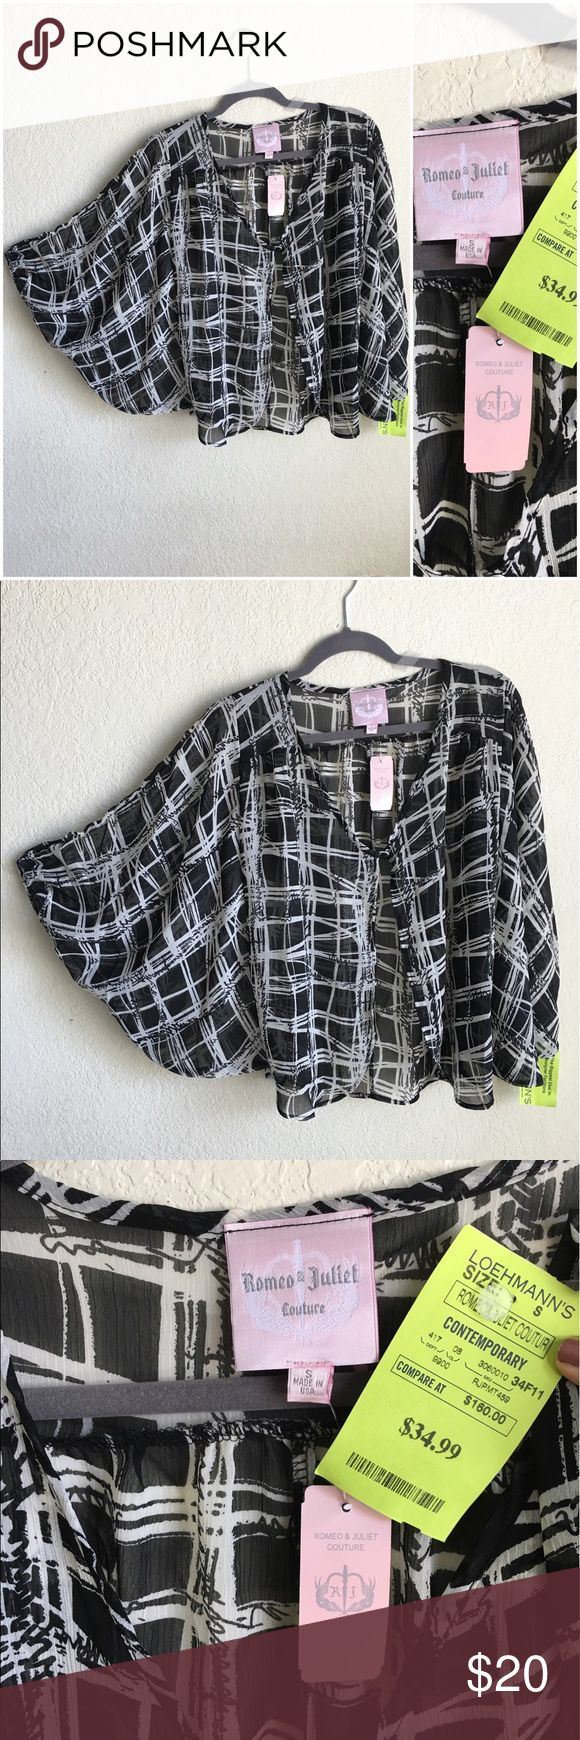 NWT Romeo & Juliet Couture Batwing Cardigan Kimono Gorgeous new with tags cape kimono. Sheer with a gun Black and white print. Oversized small. Romeo & Juliet Couture Tops Blouses